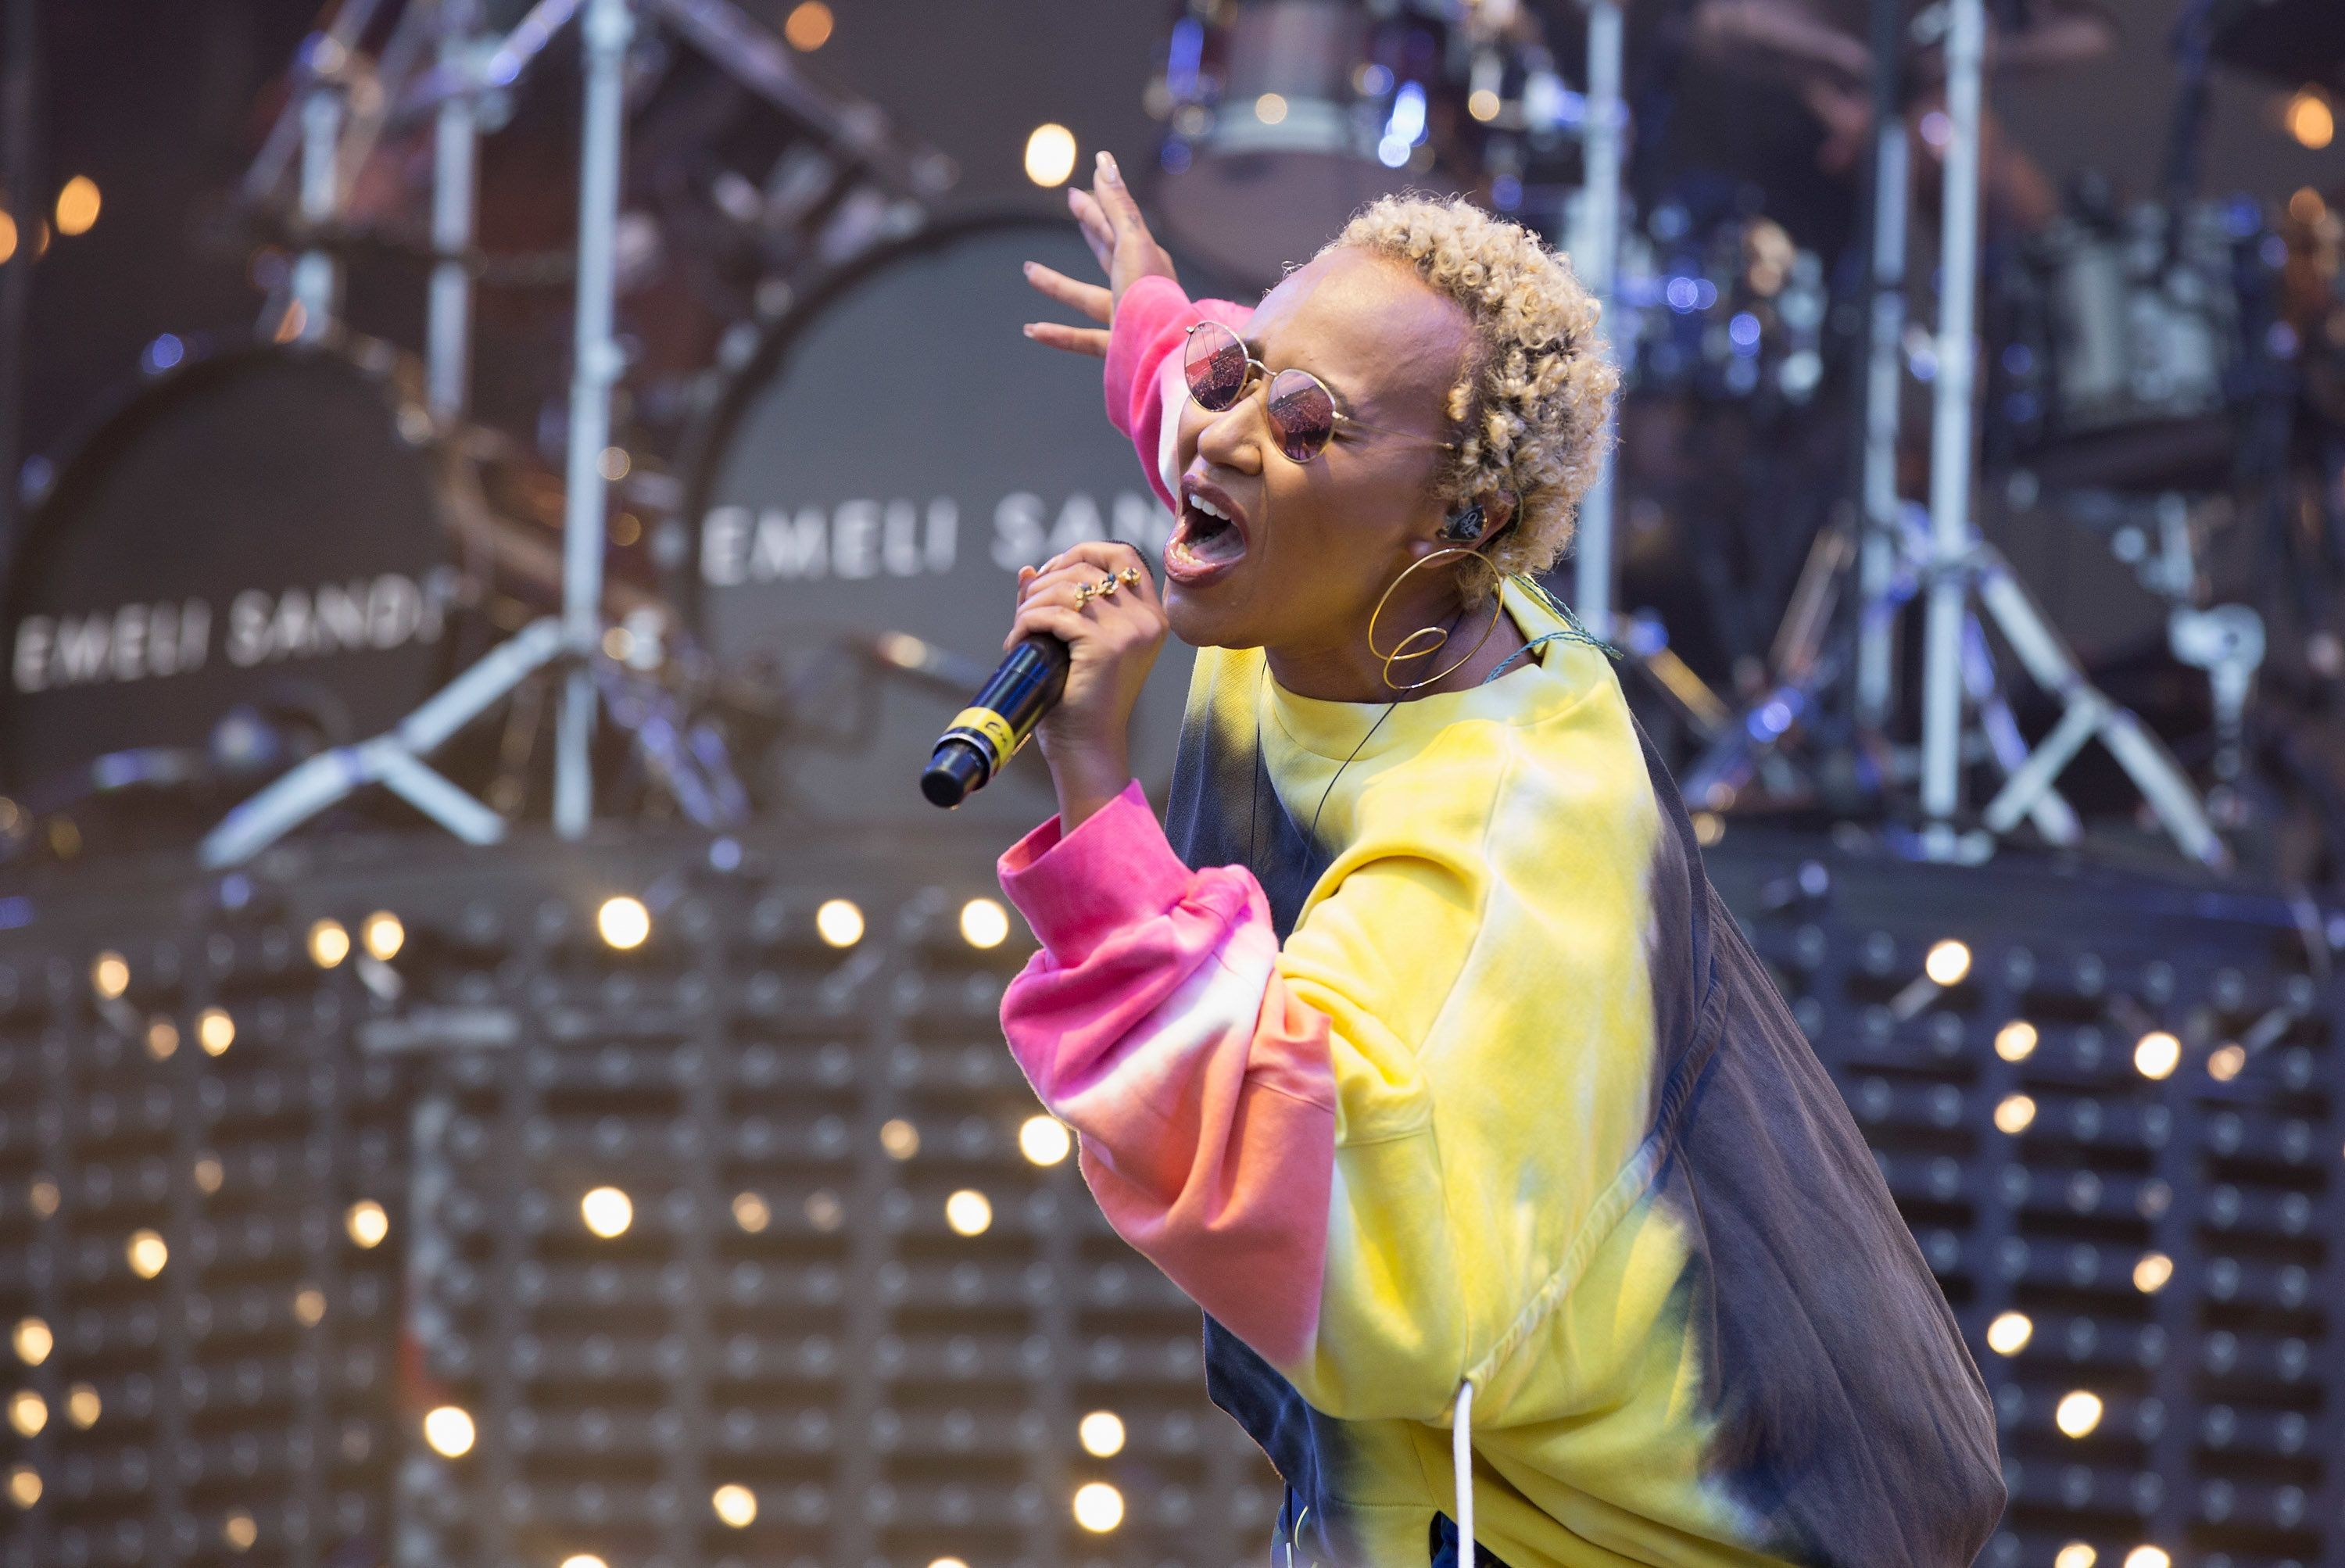 Emeli Sande 'Wrote A Song Inspired By Emotions' She Felt After Manchester